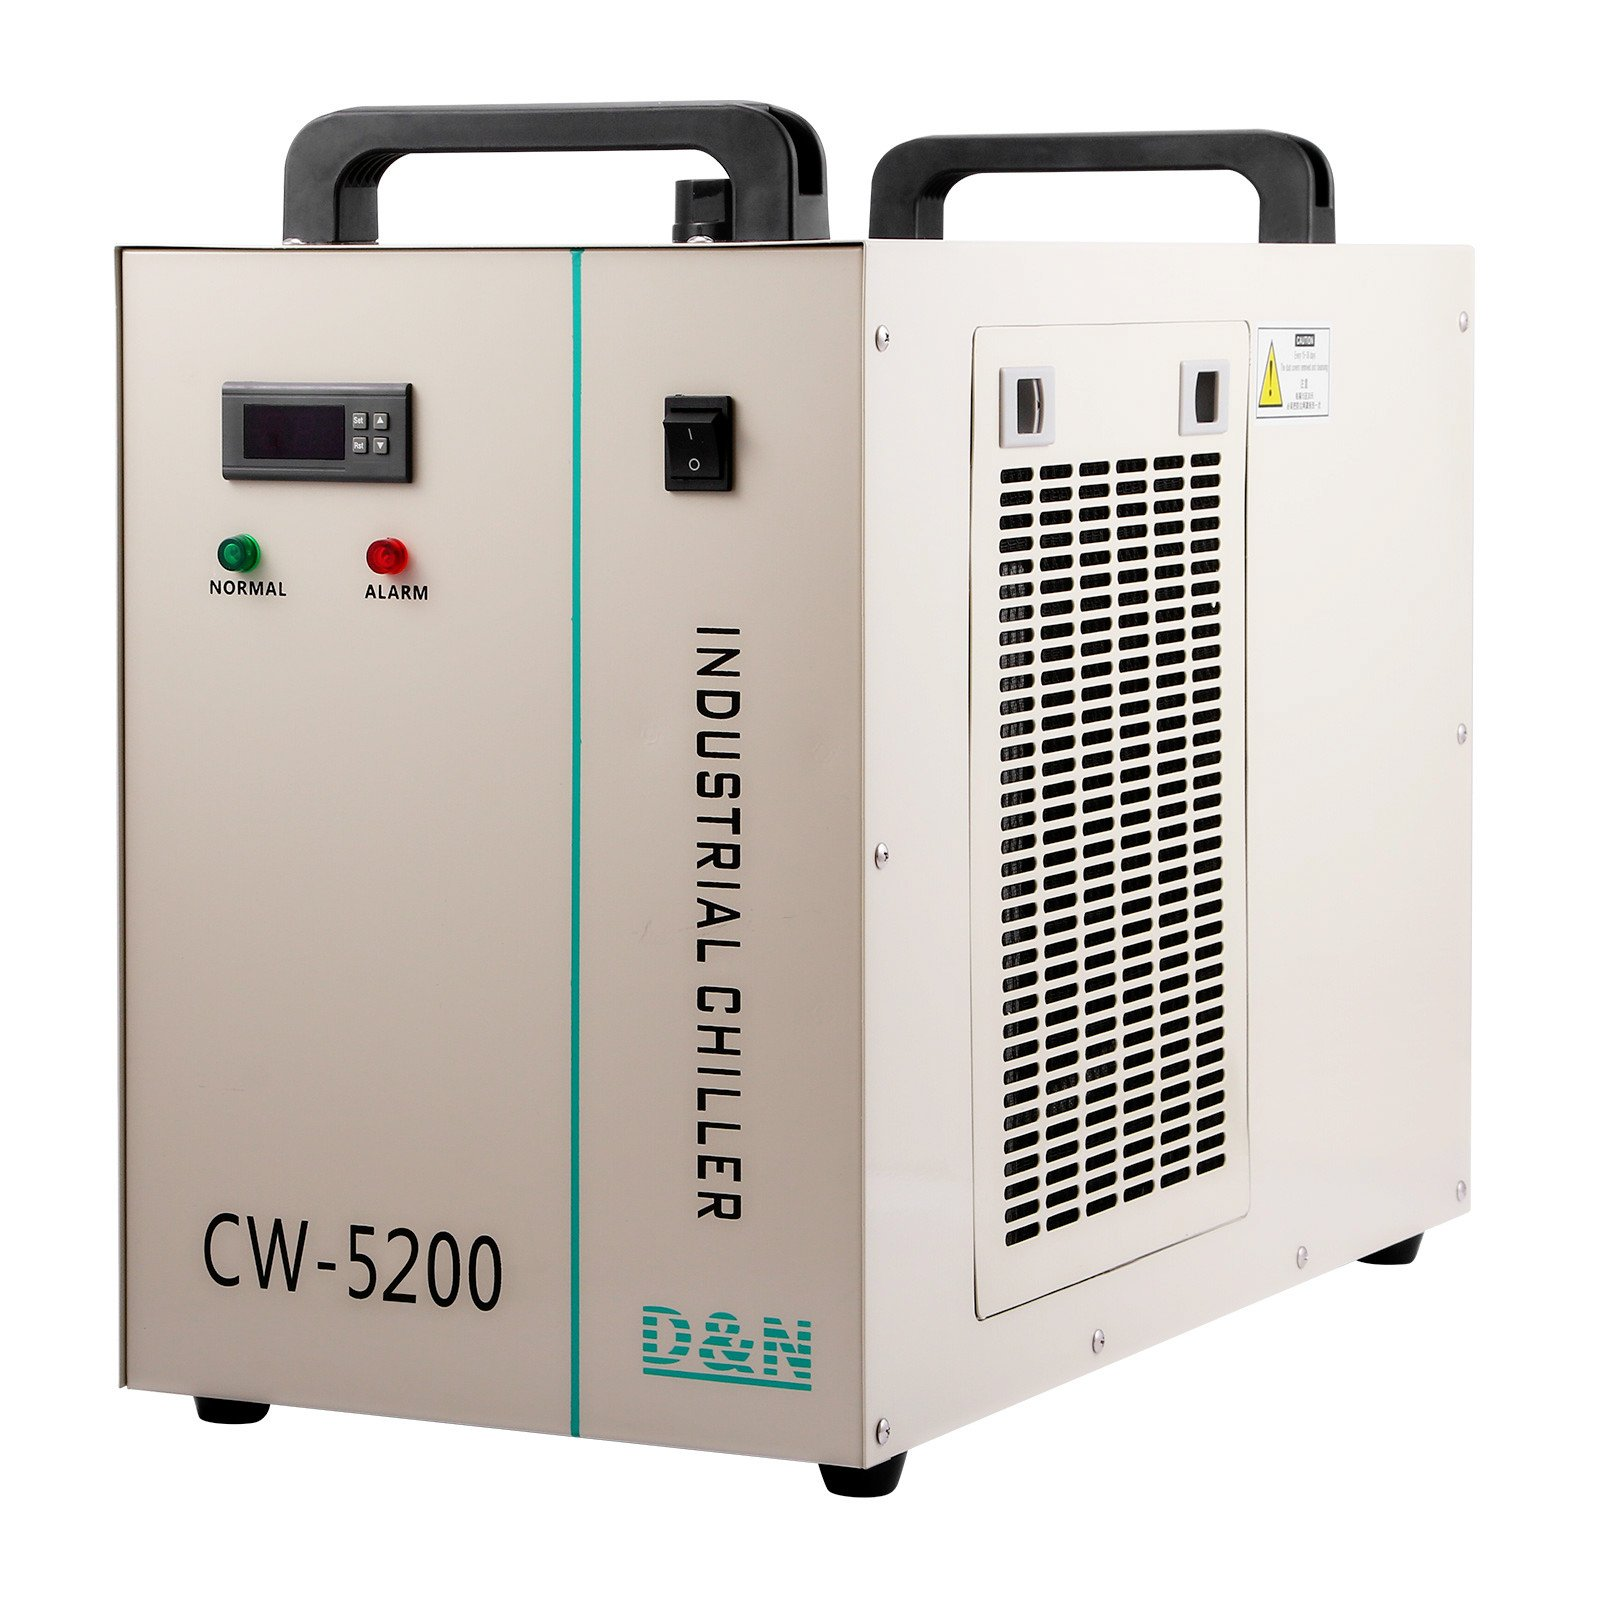 Forkwin Water Chiller 6L Water Chiller Industrial 10L/min Water Chiller Cooler 1400W Water Cooling Chiller for 130/150W CO2 Glass Tube